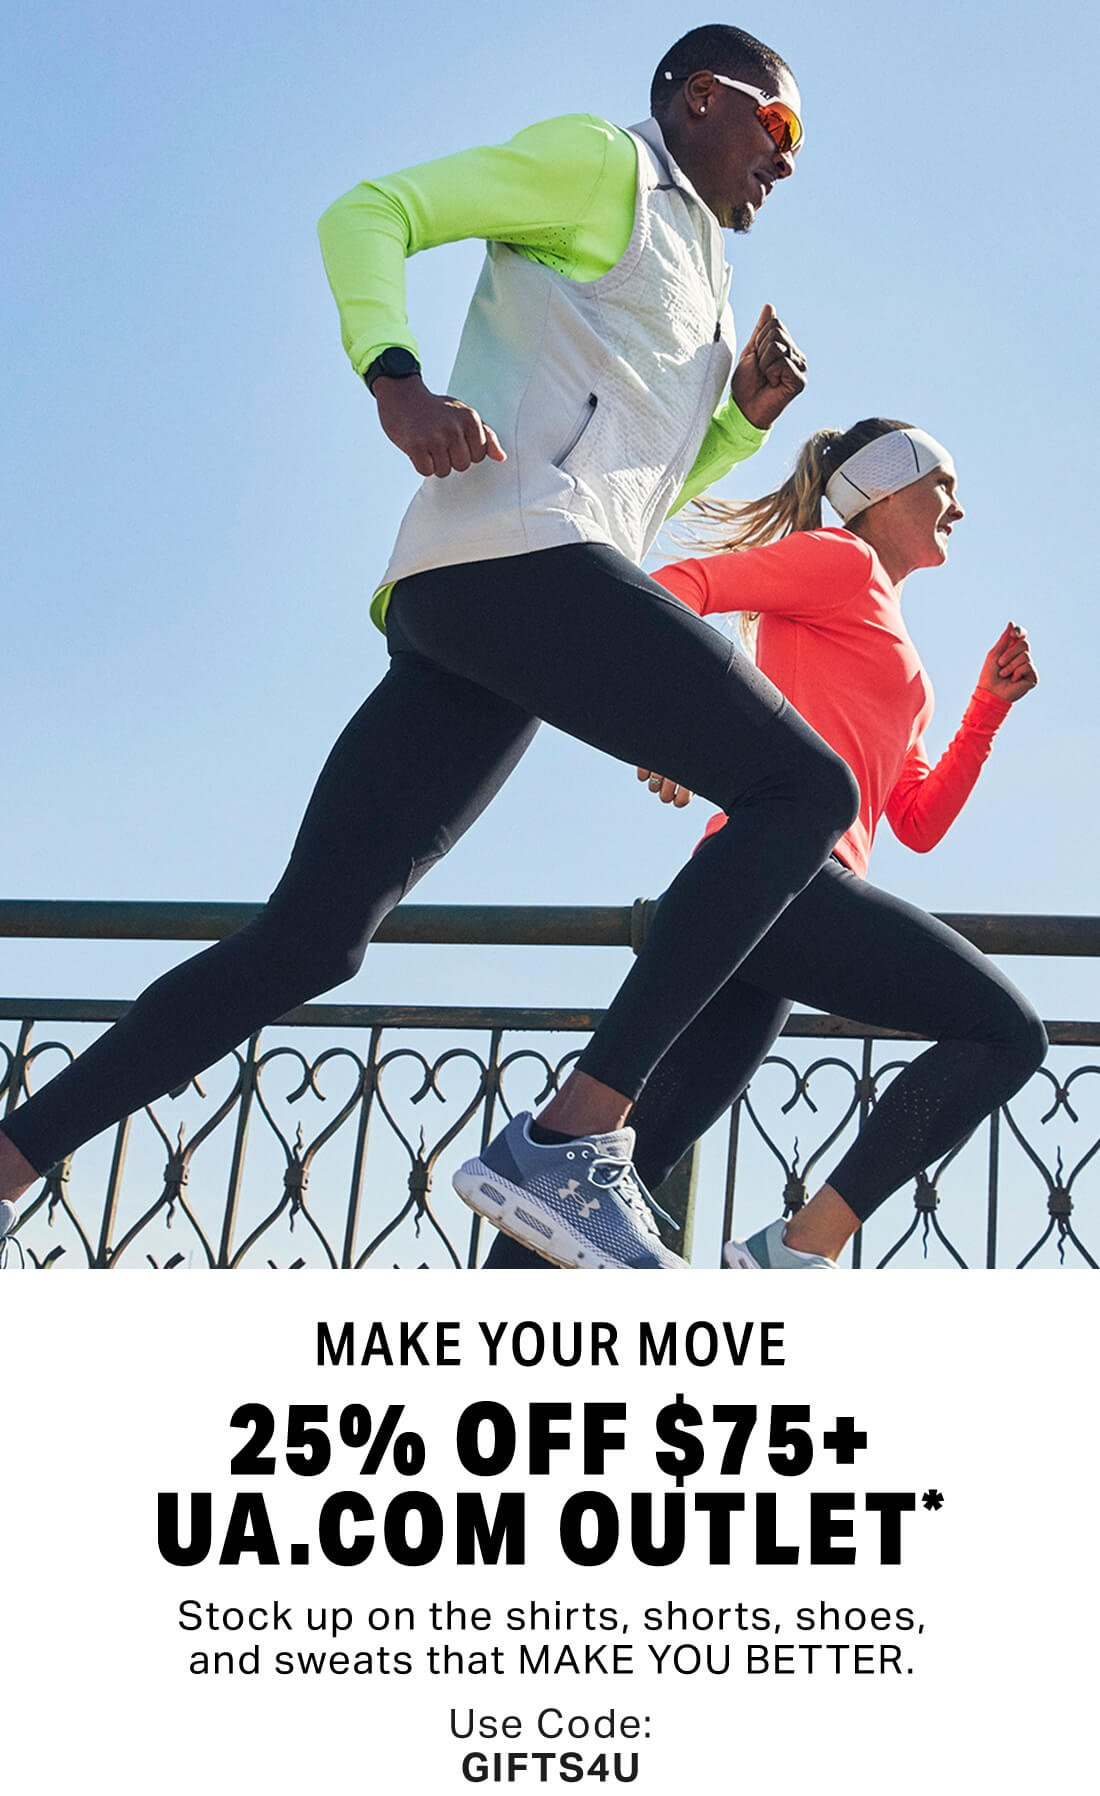 MAKE YOUR MOVE - 25% OFF $75+ UA.COM OUTLET* - Stock up on the shirts, shorts, shoes, and sweats that MAKE YOU BETTER. - Use Code: GIFTS4U